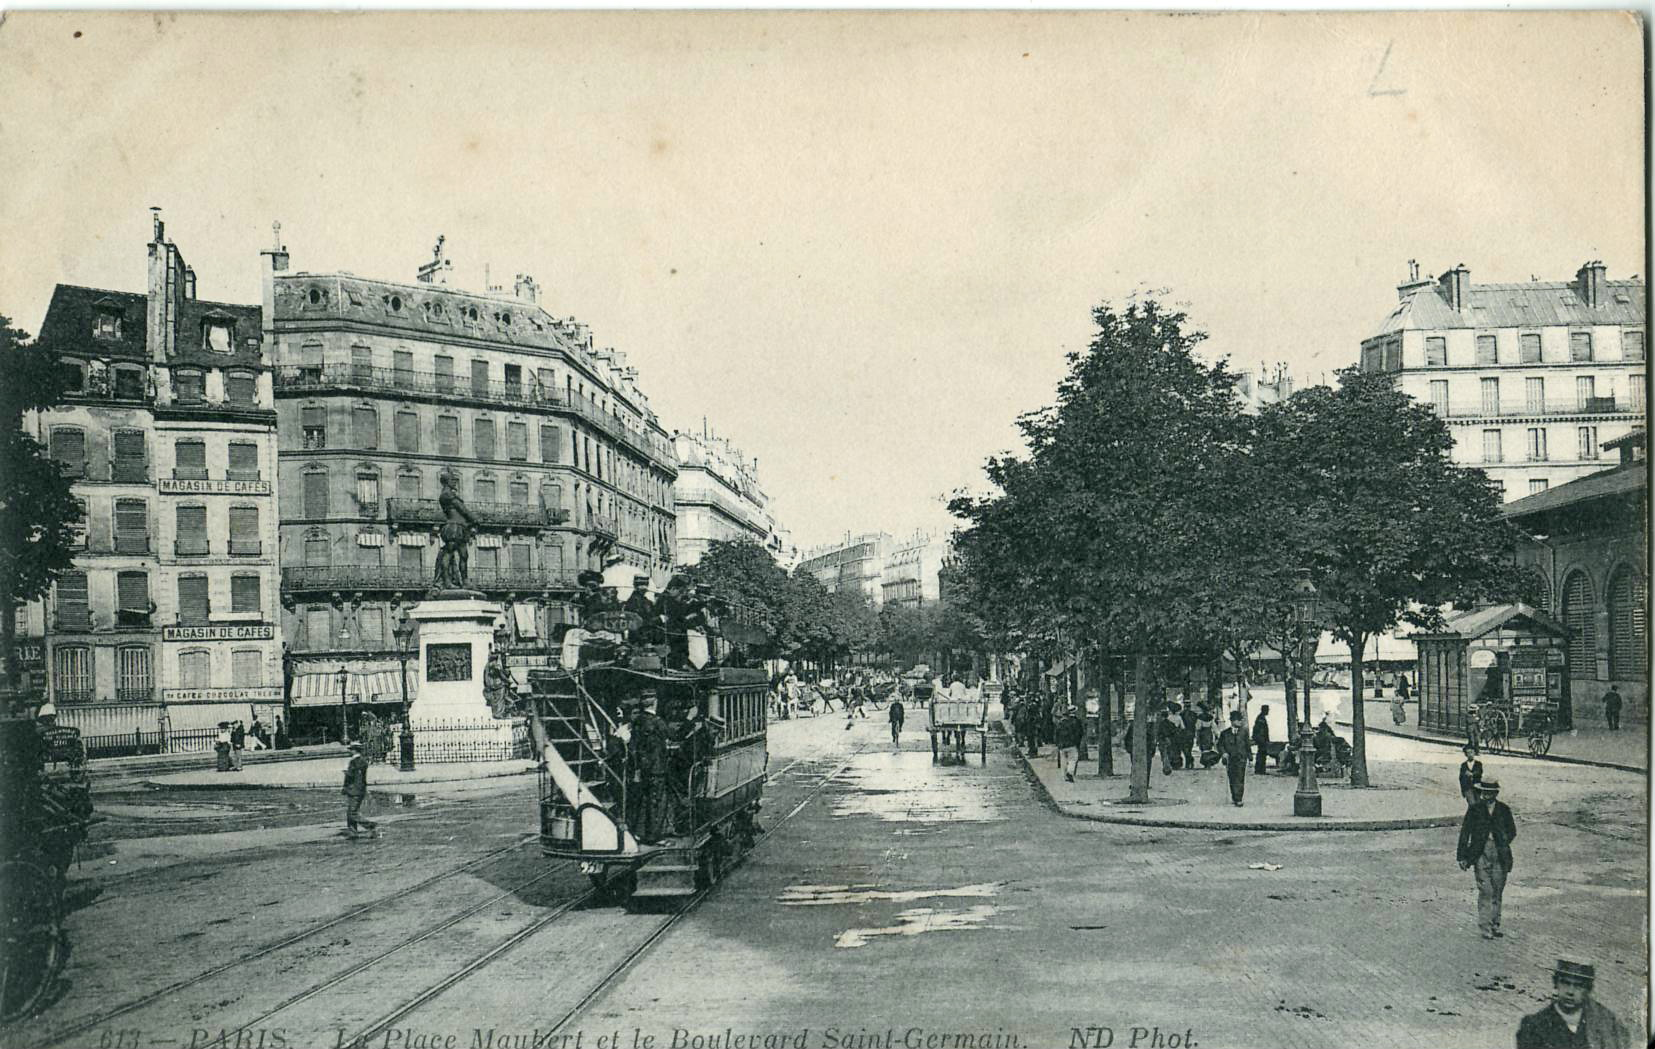 File nd 613 paris la place maubert et le boulevard saint germain jpg wi - La quincaillerie boulevard saint germain ...